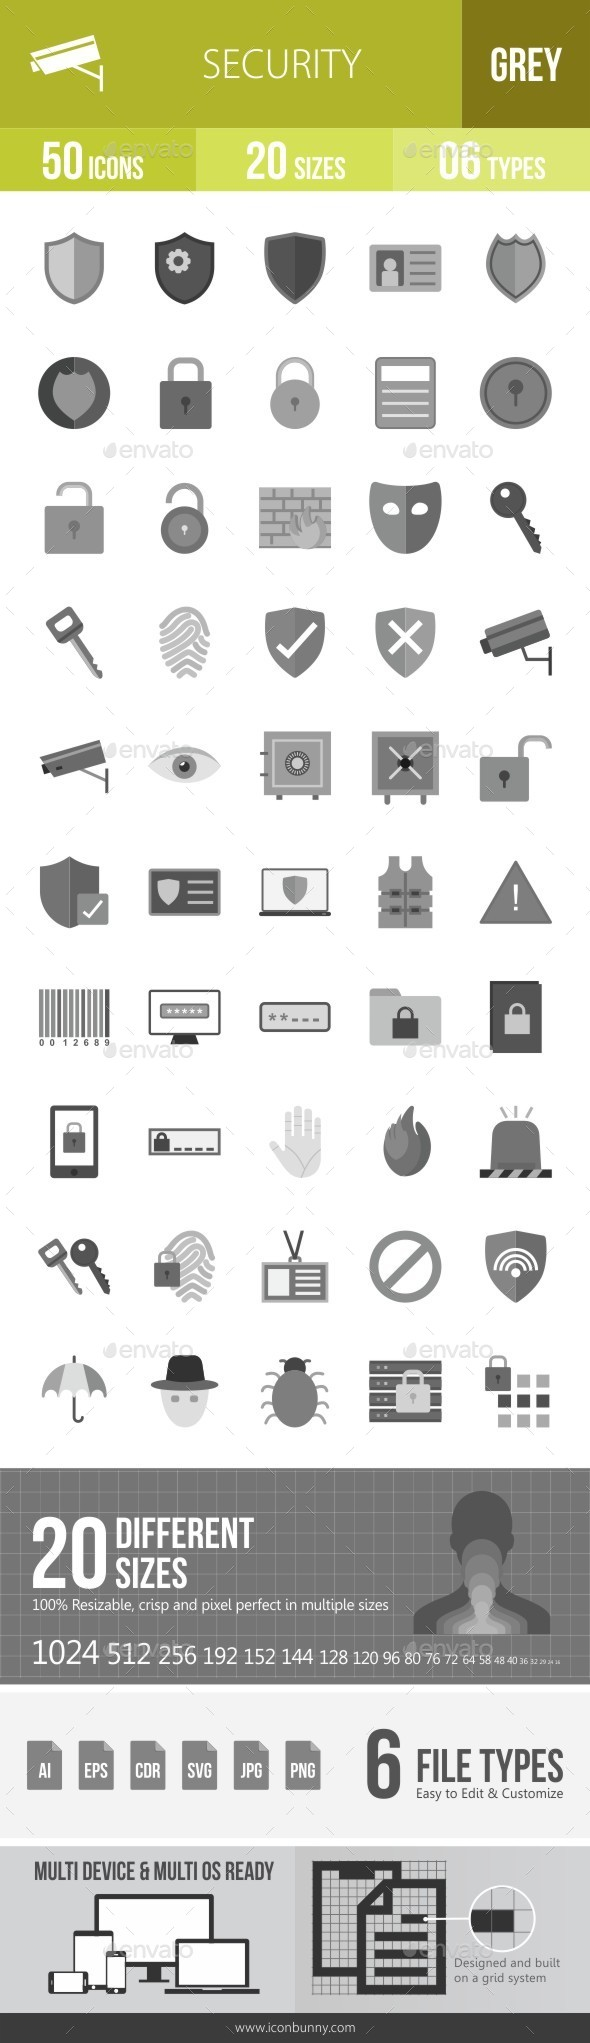 Security Greyscale Icons - Icons